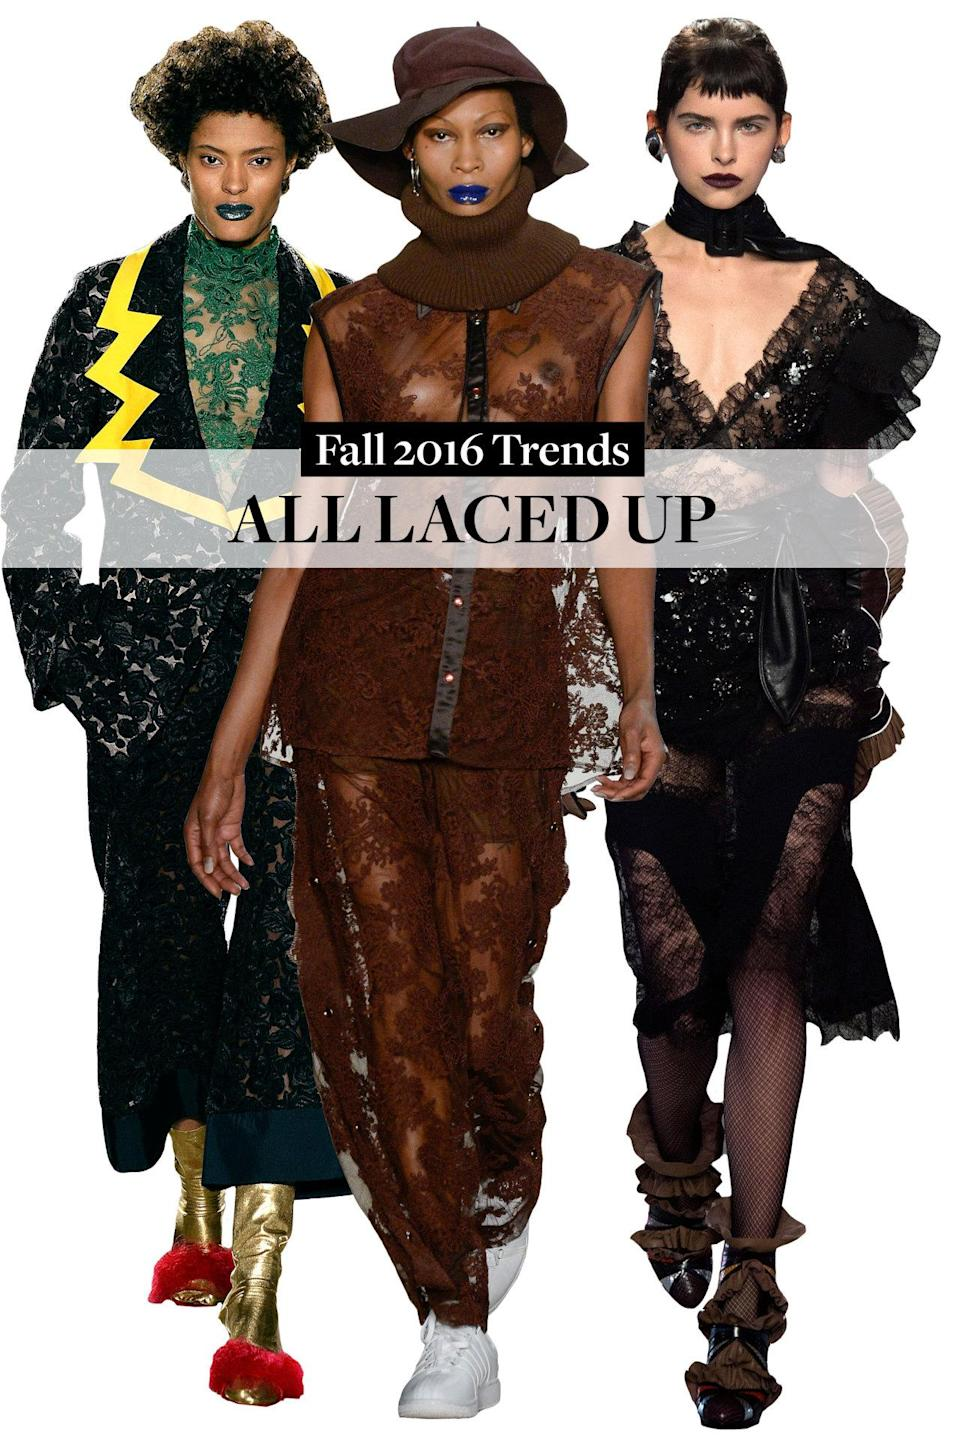 <p>From Gypsy Sport's unisex lace blouse and pants to Rodarte's gothic ruffled lace and VFiles' black lace suit, this fabric gets more versatile every year.</p>